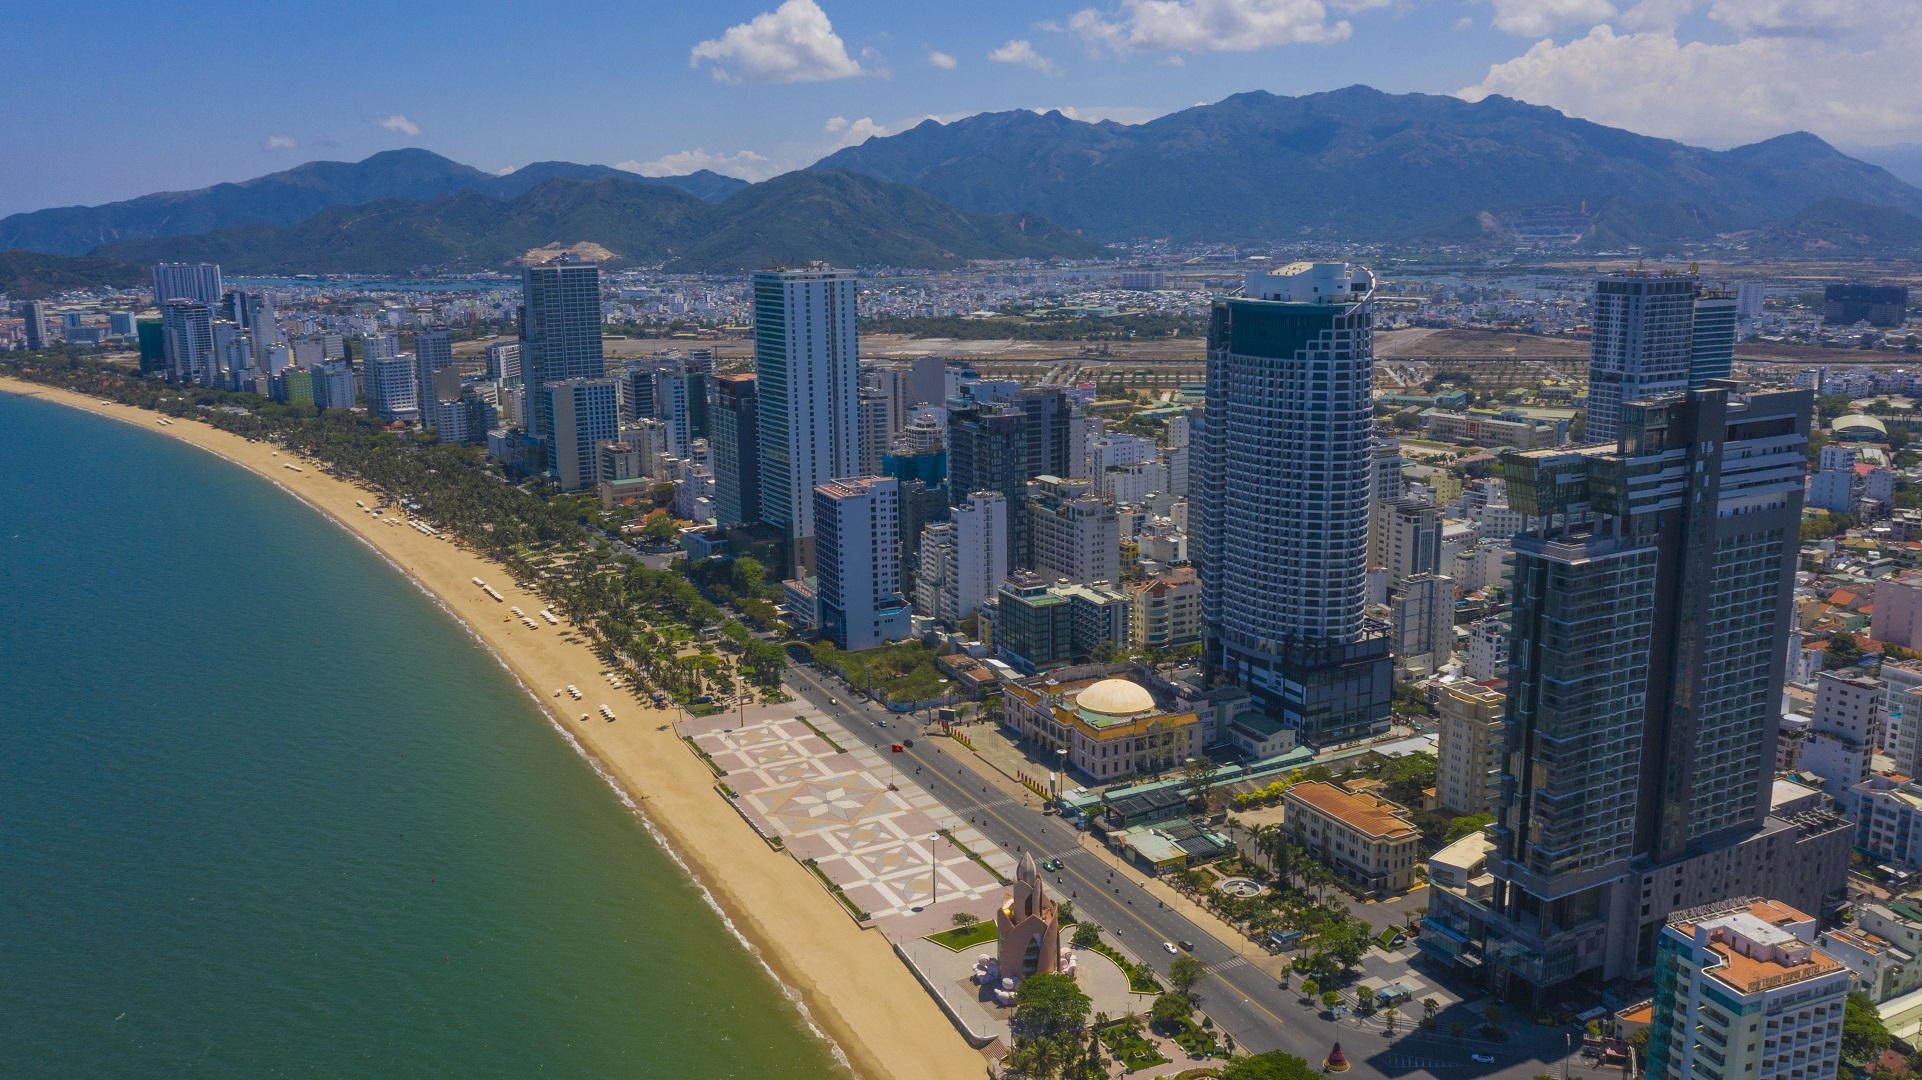 An aerial photo shows buildings along the beach in the tourism city of Nha Trang. Photo: Quang Dinh / Tuoi Tre News